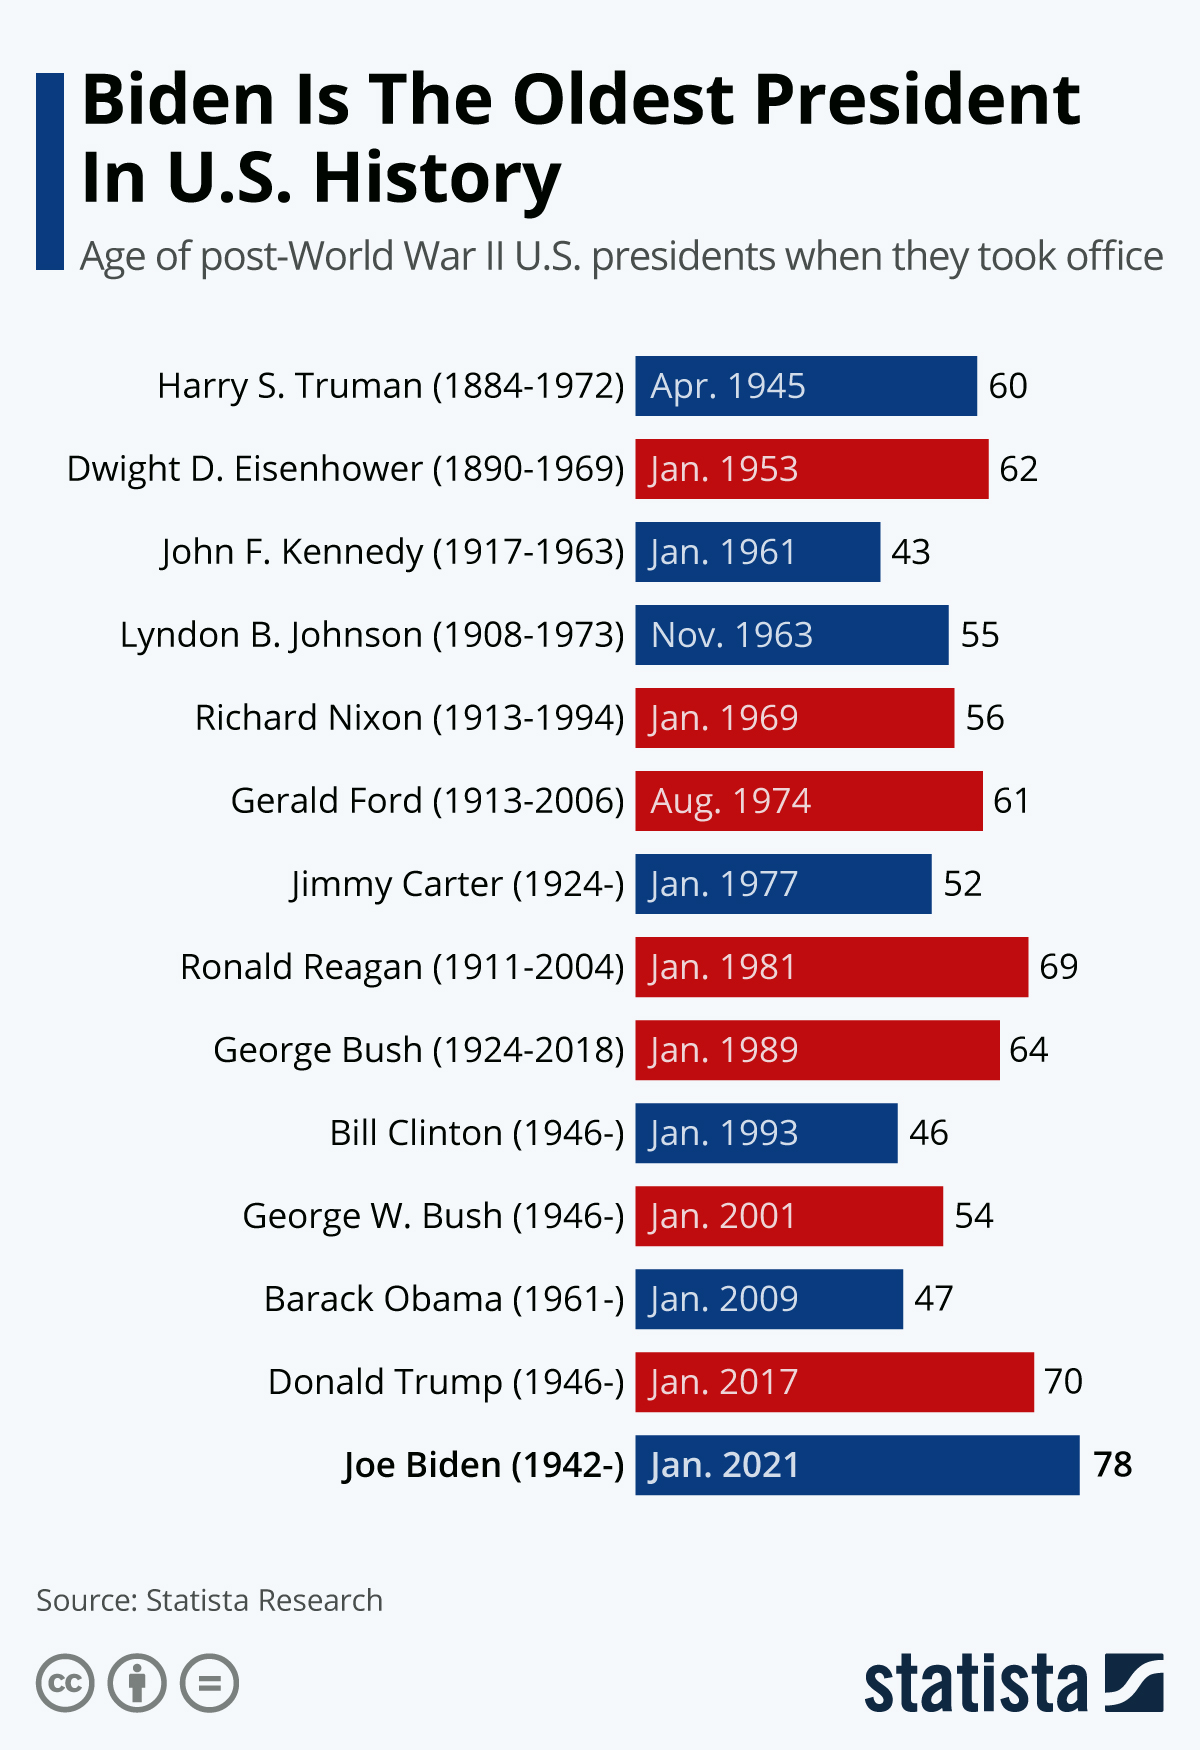 Biden is the oldest President in US history